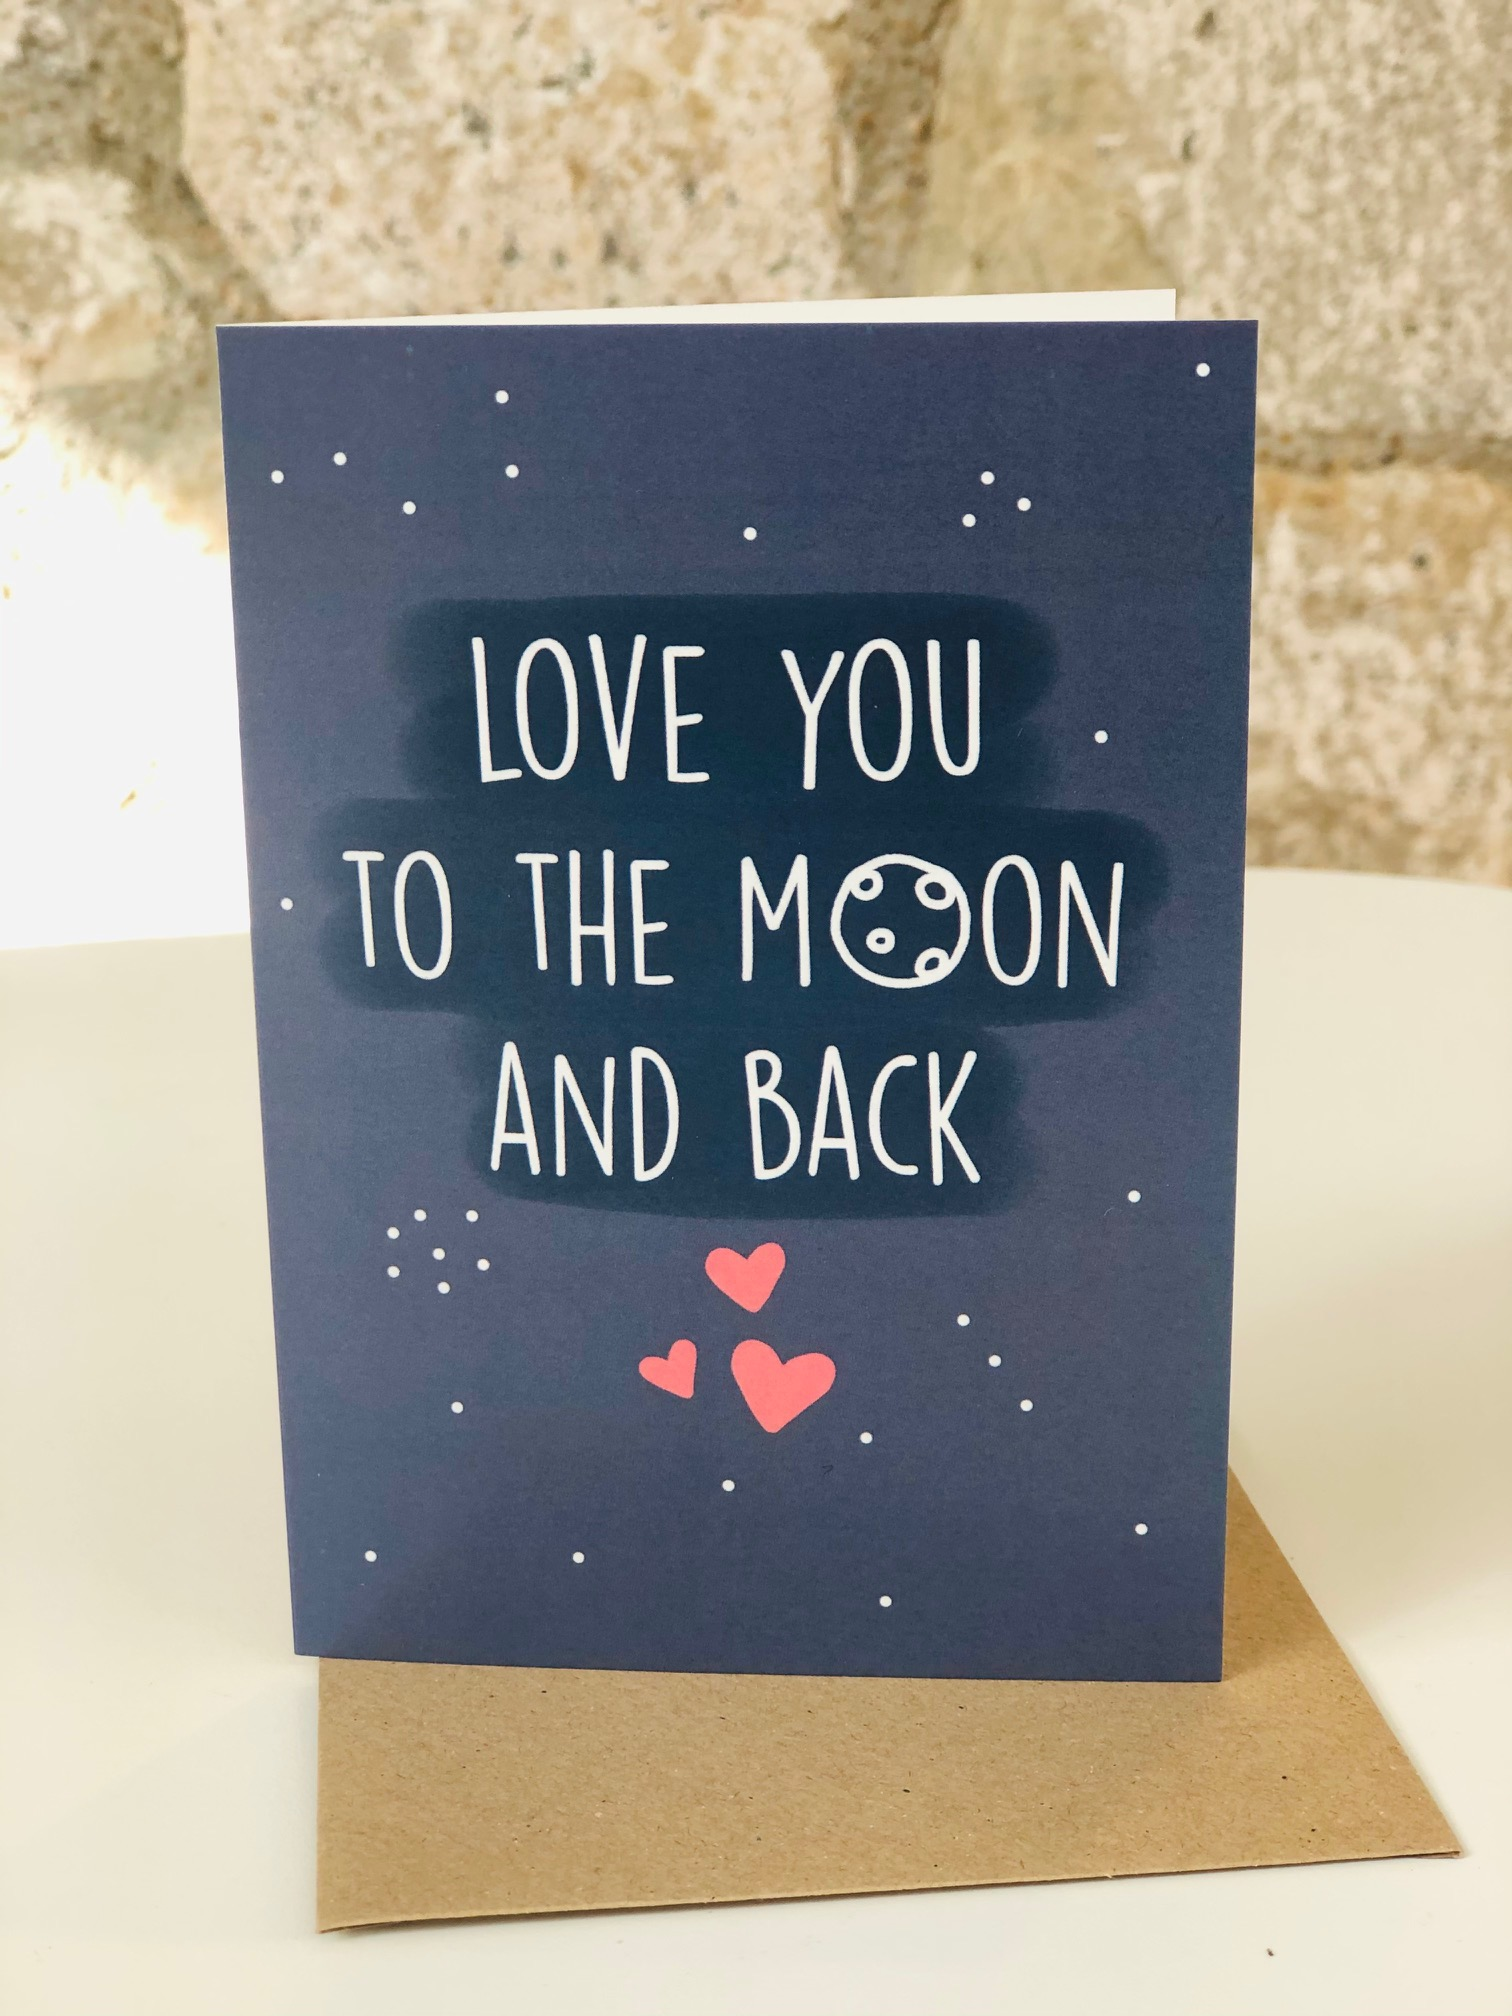 'Love You to the Moon and Back' greetings card by Emma